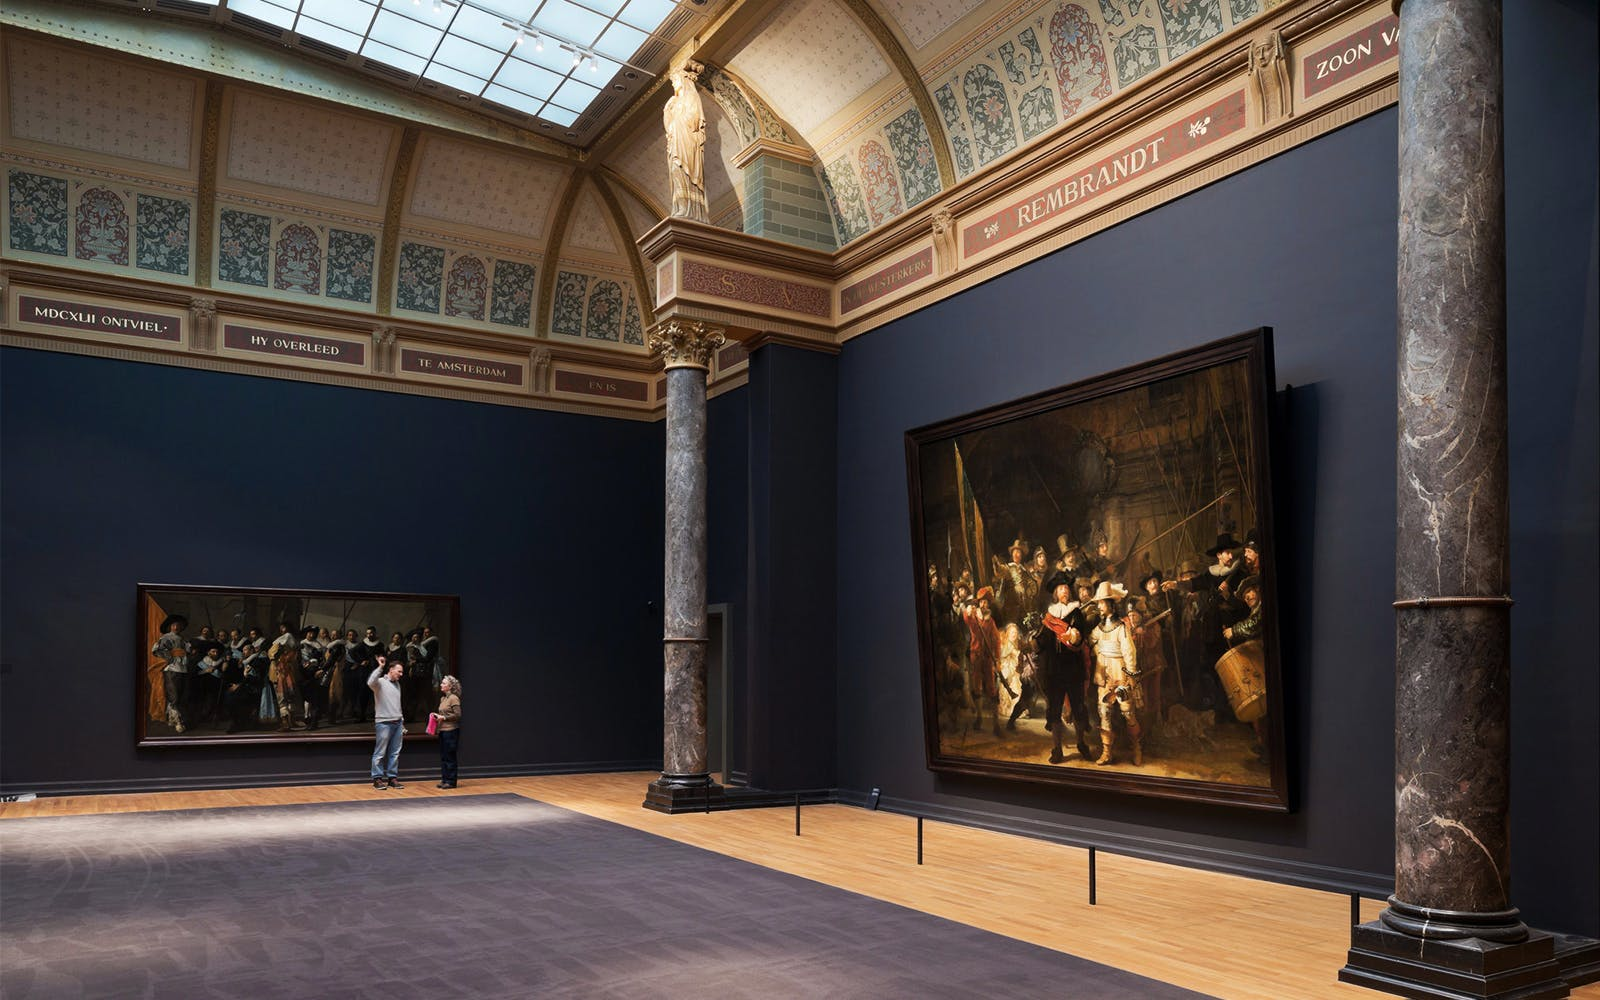 Skip The Line Combo: City Canal Cruise & Rijksmuseum Entry Ticket